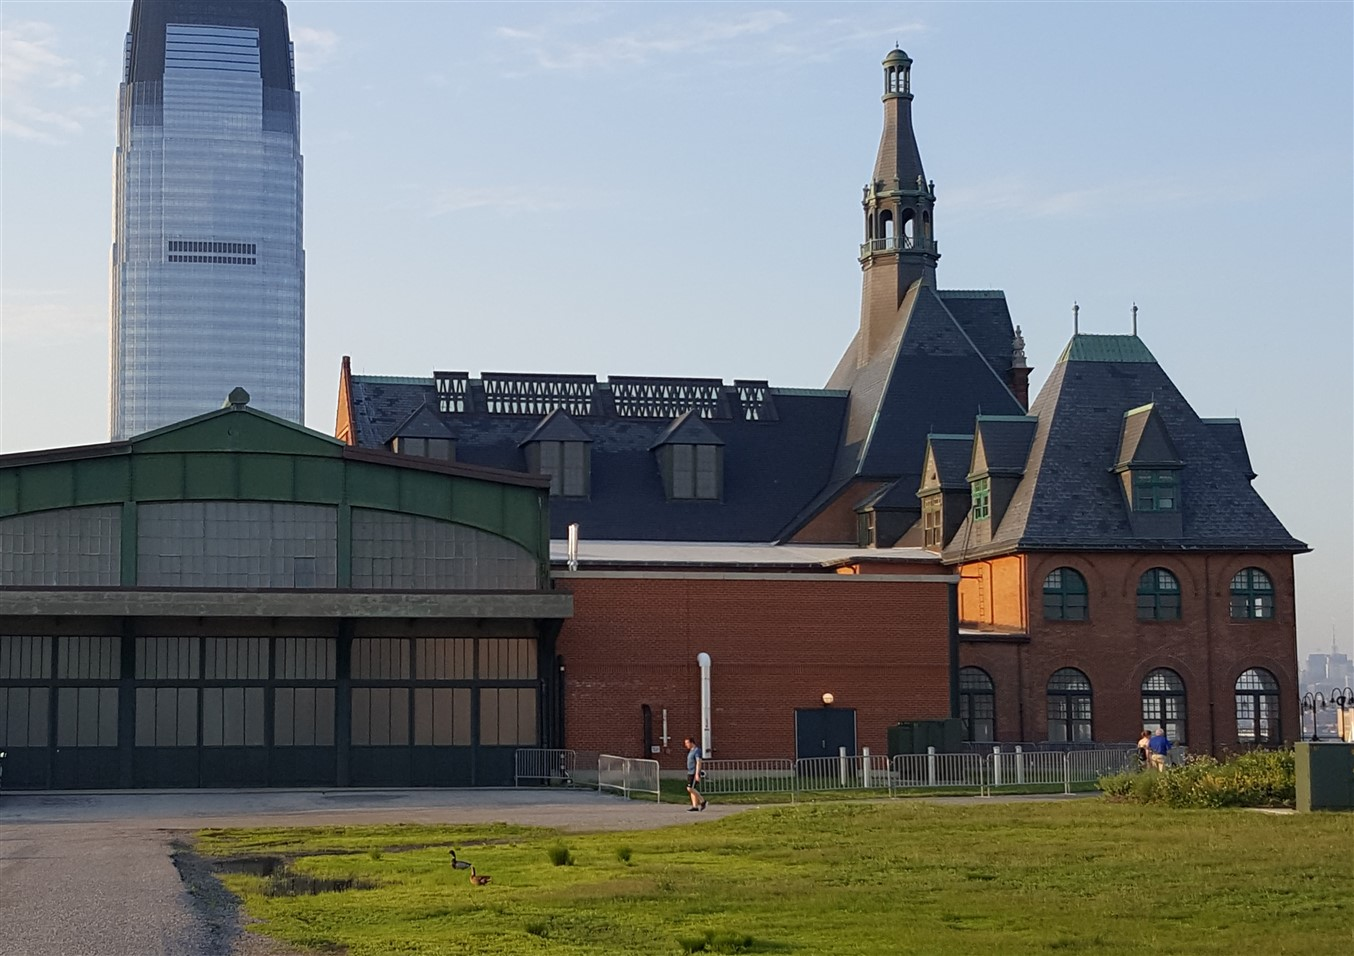 2018 05 29 181 Jersey City NJ Liberty State Pkark.jpg